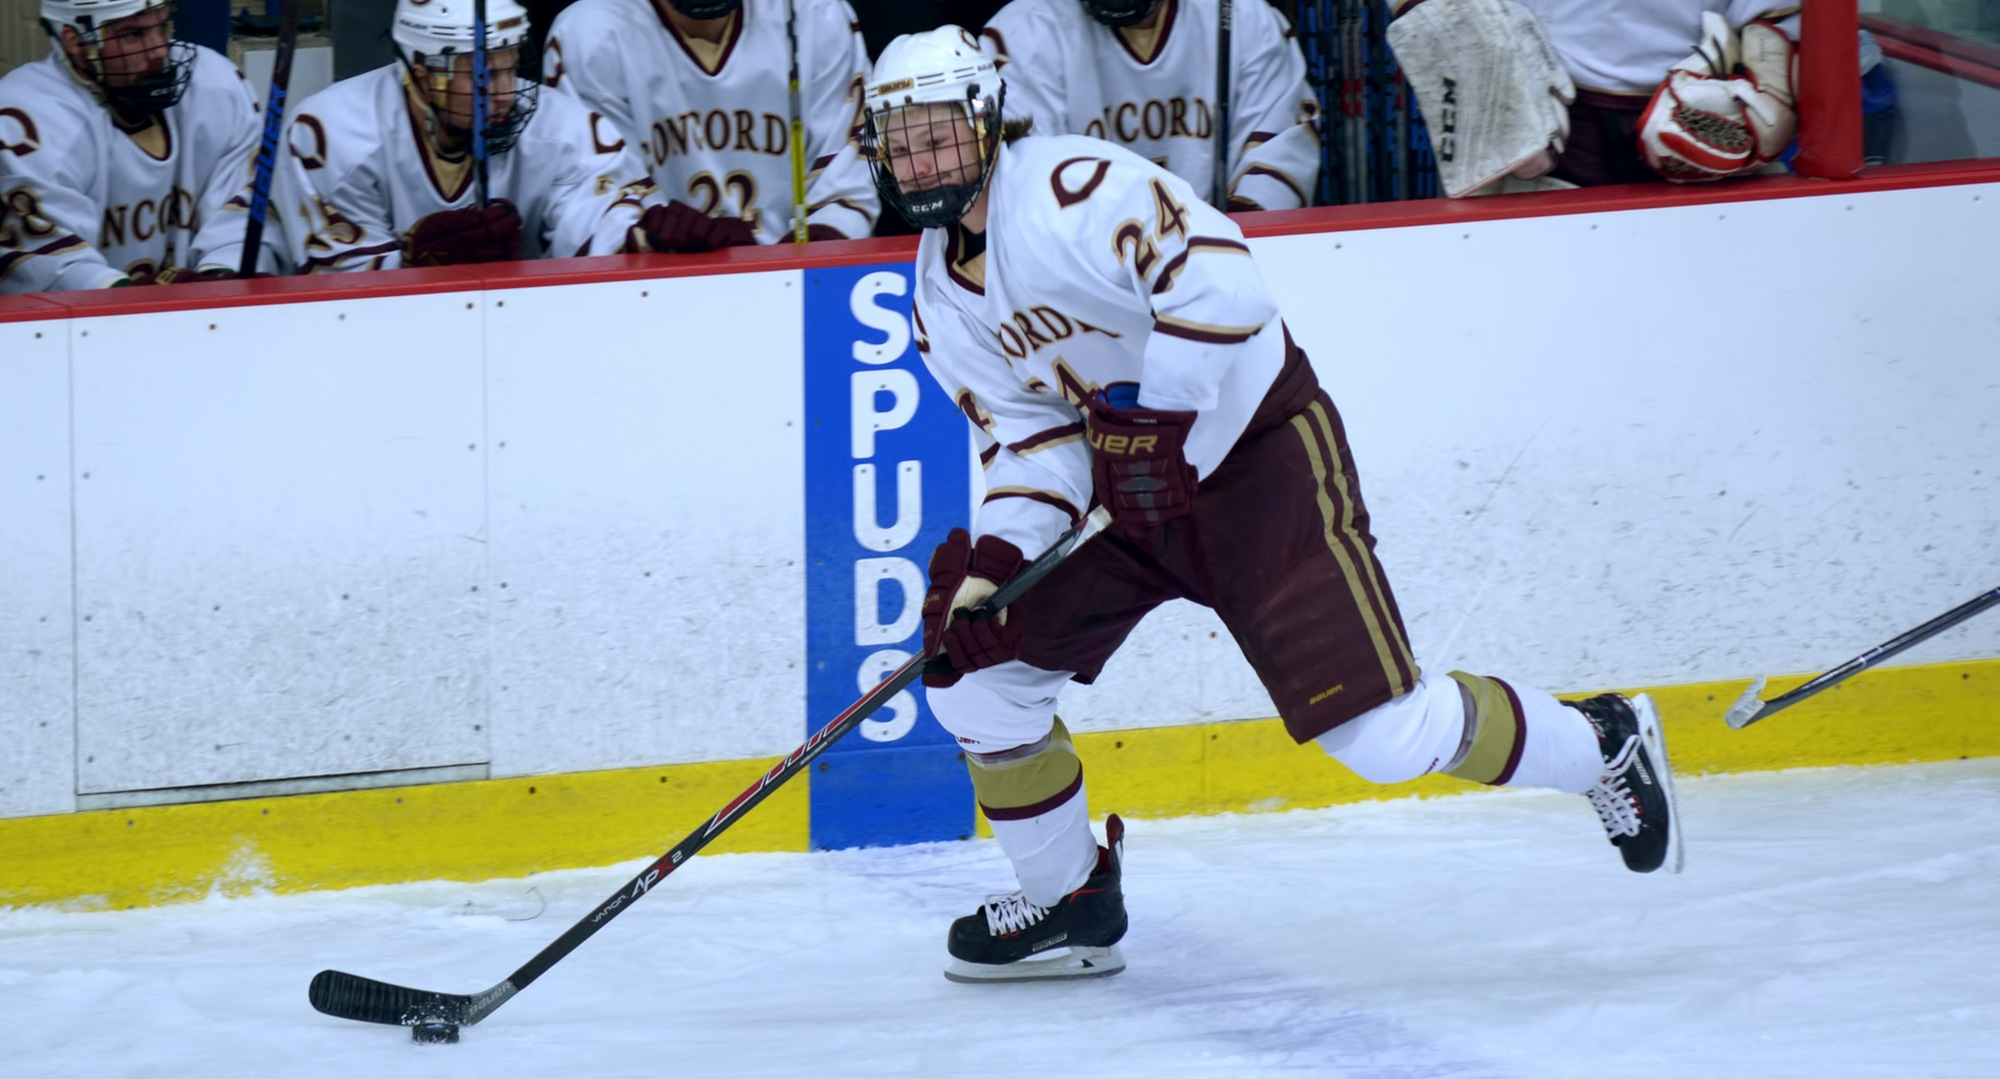 Sophomore Jake Ellingson scored the game-winning goal with 7.1 seconds left in overtime to give the Cobbers a 4-3 win over No.14-ranked Milwaukee School of Engineering.